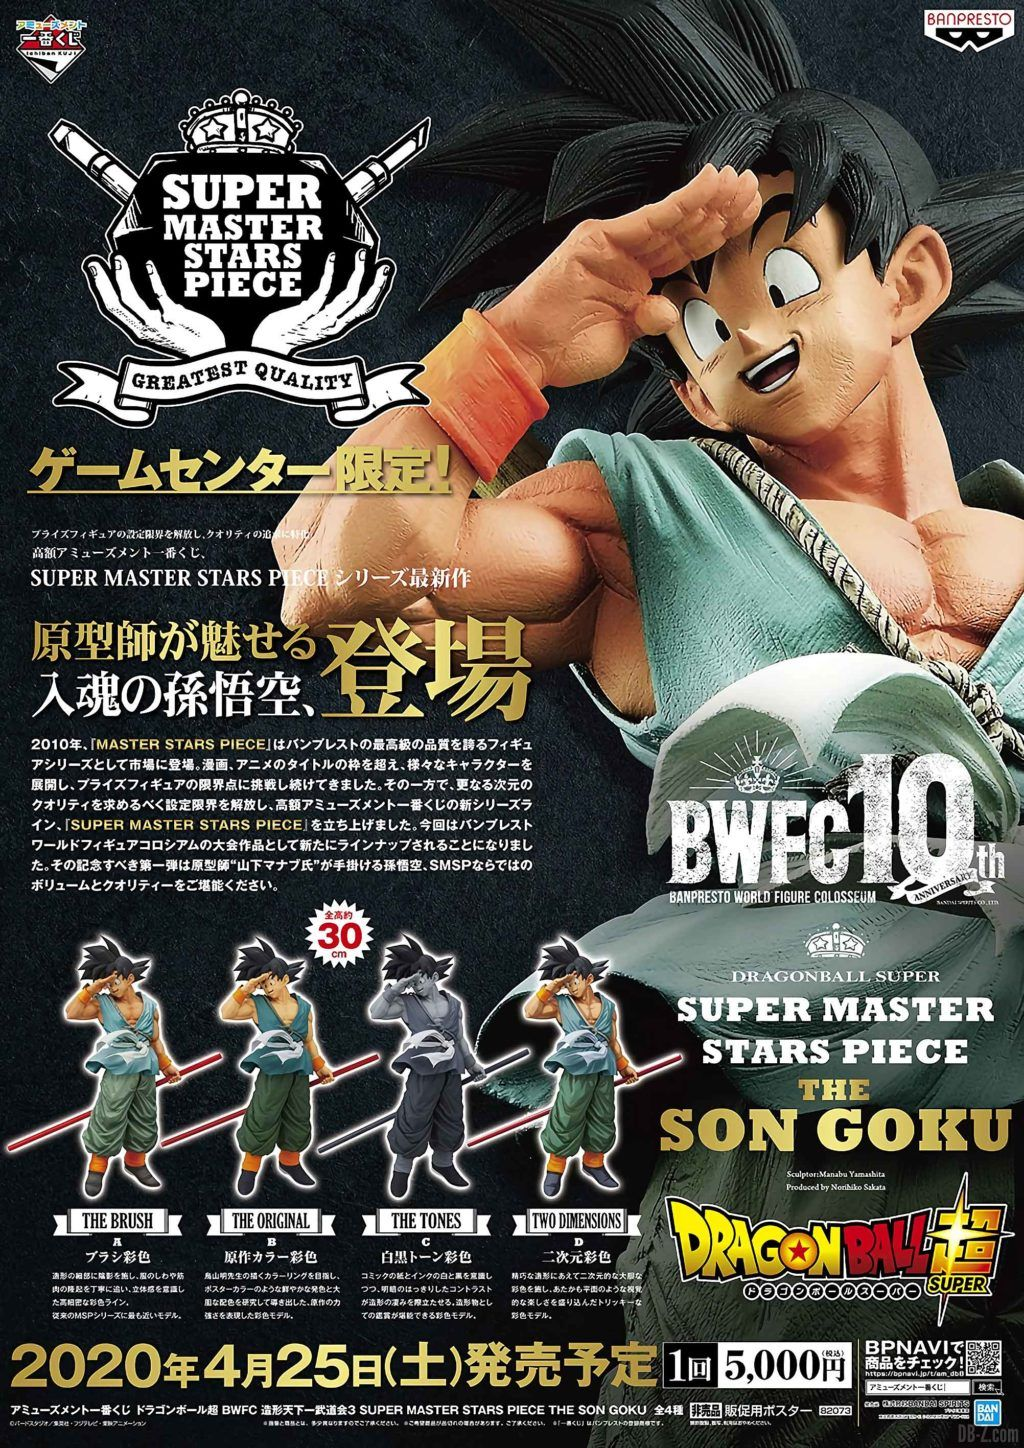 Super Master Stars Piece The Son Goku 2020